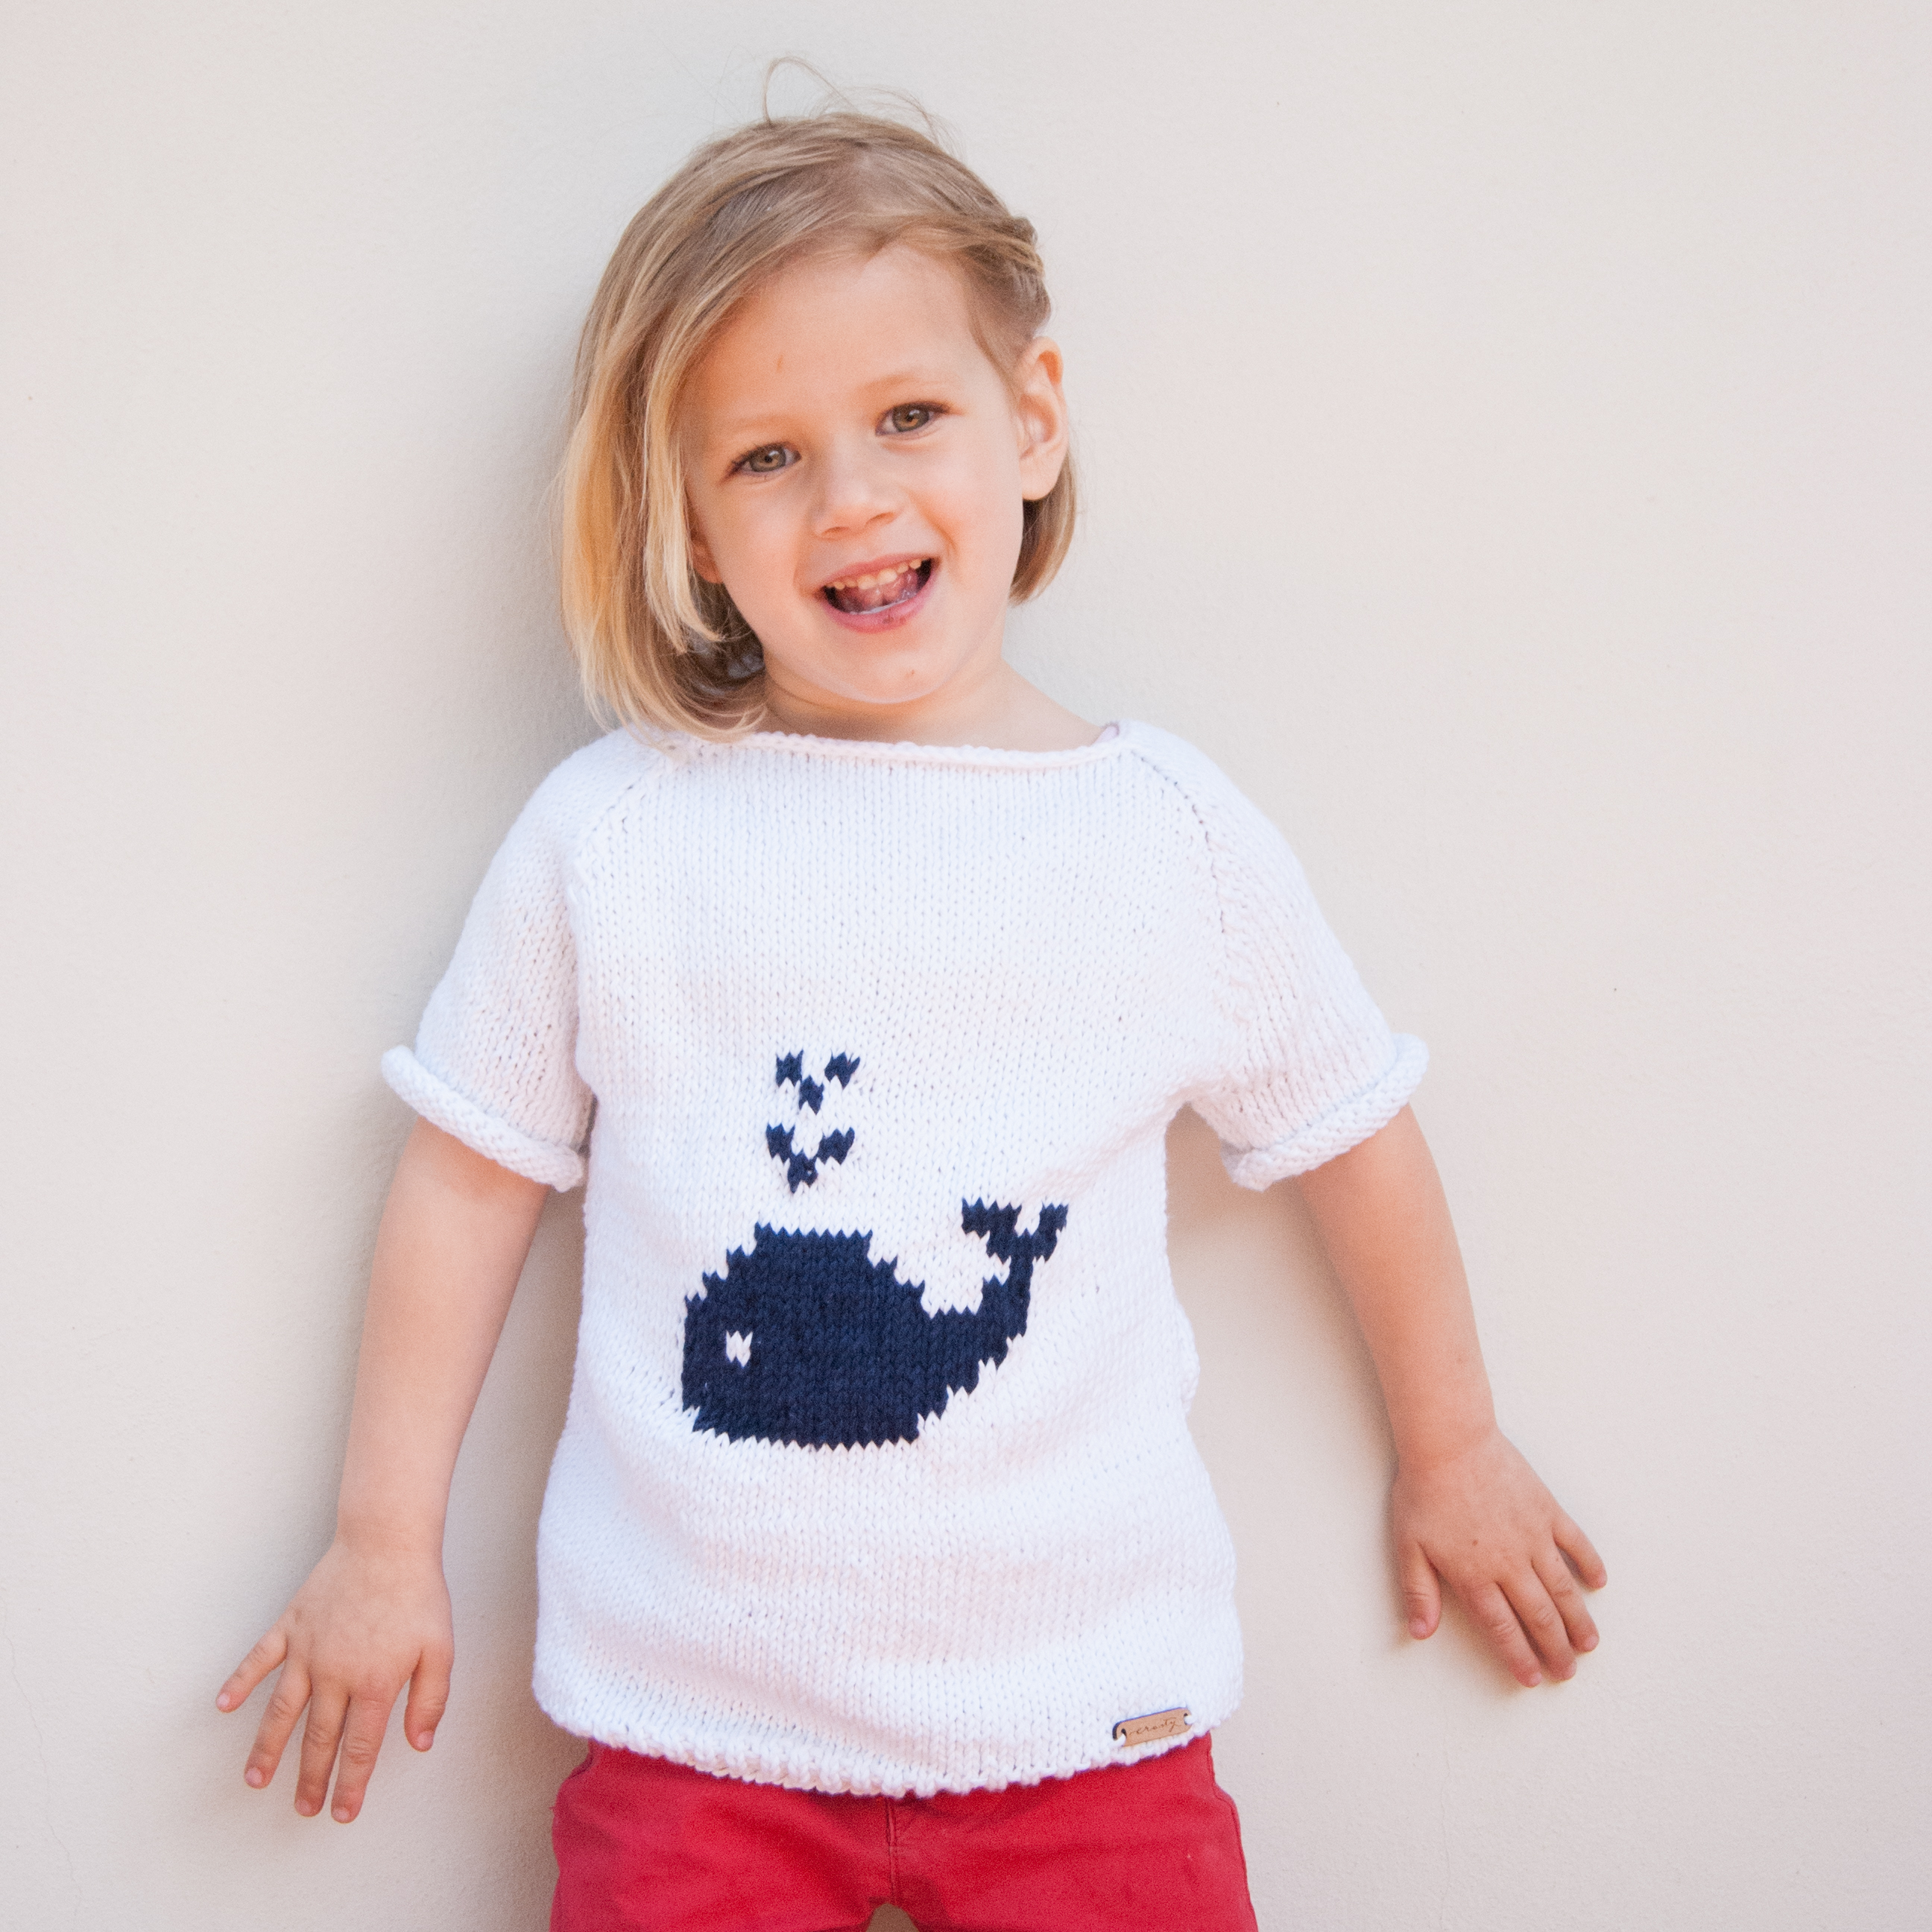 Knitted sweater Fico kids whales front1.jpg